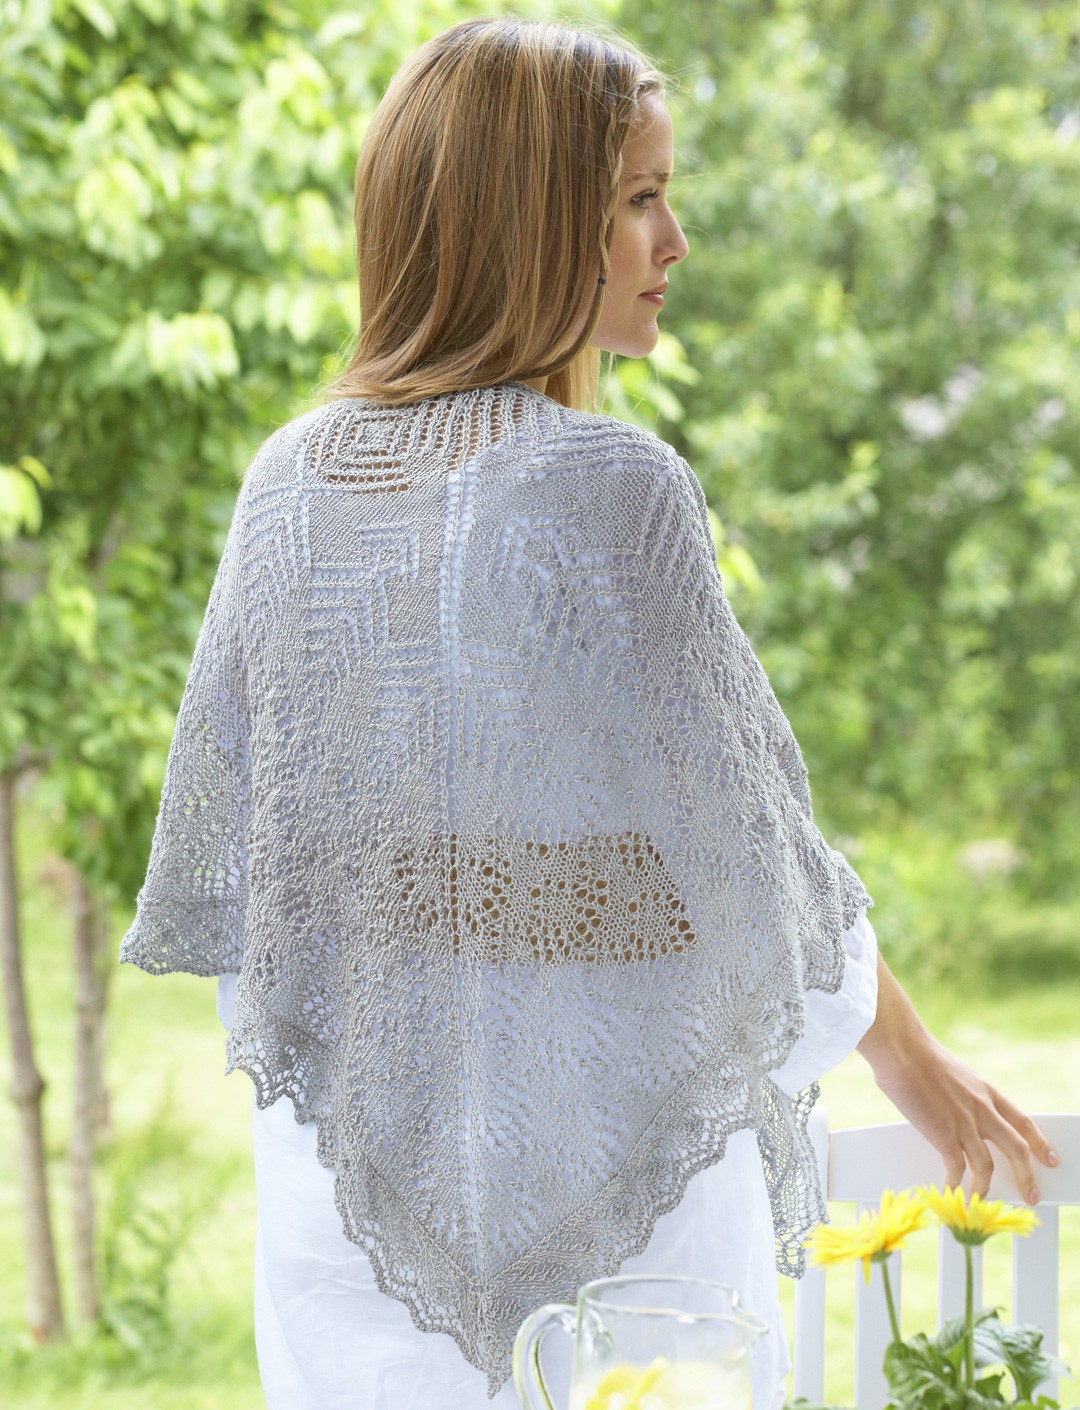 Bernat lace knit shawl knit pattern yarnspirations lace knit shawl bankloansurffo Image collections